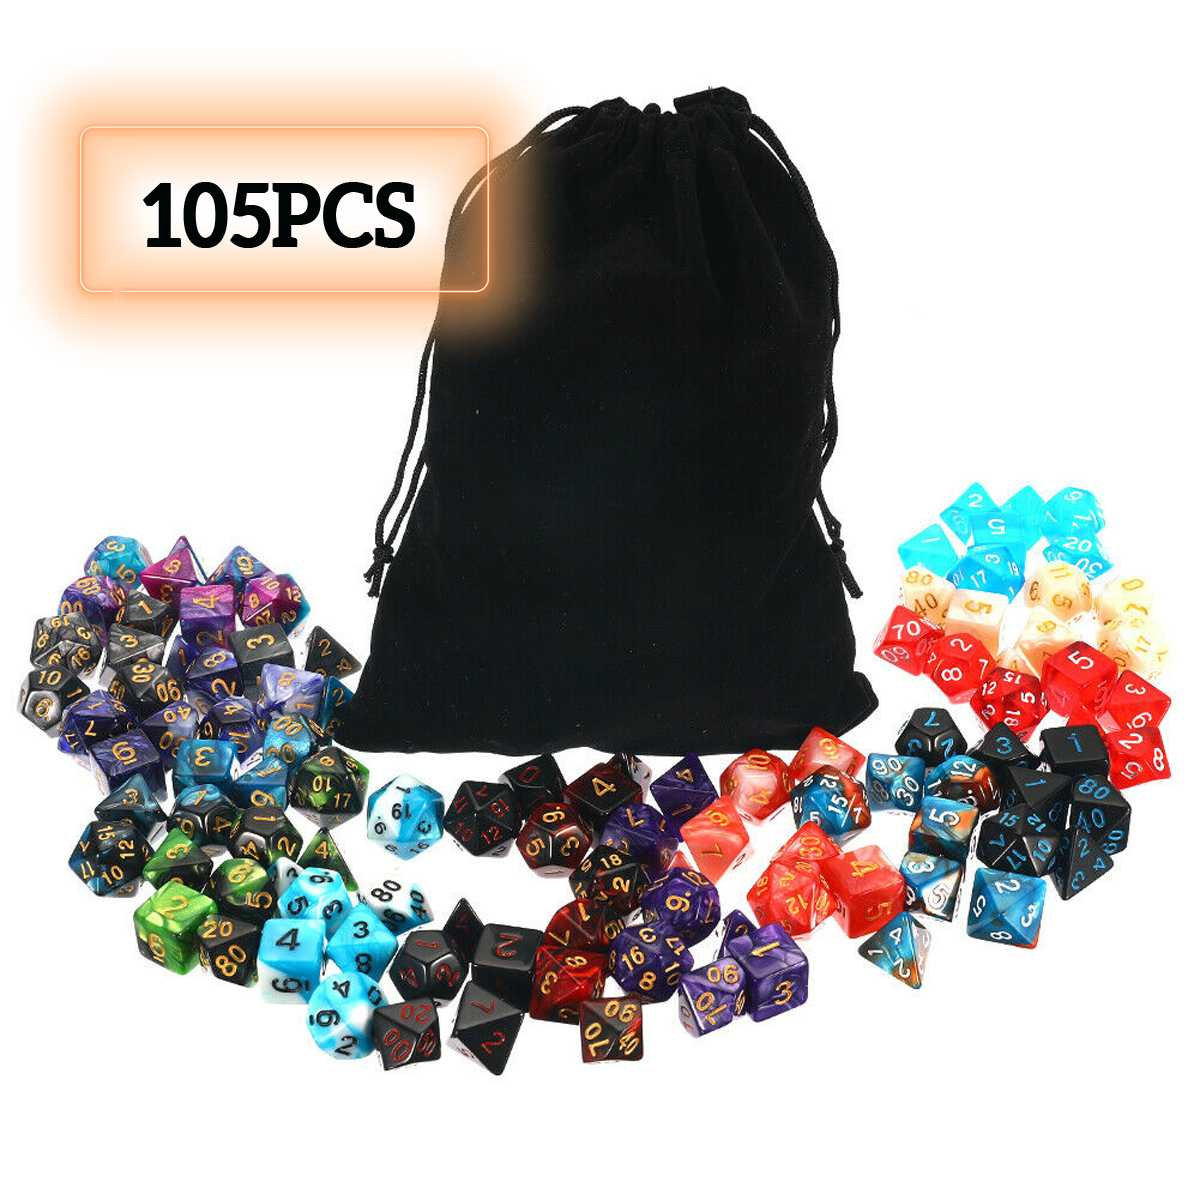 105Pcs Polyhedral Dice Set DND RPG MTG Role Playing Dragon Table Game +Bag Mixed Color Set